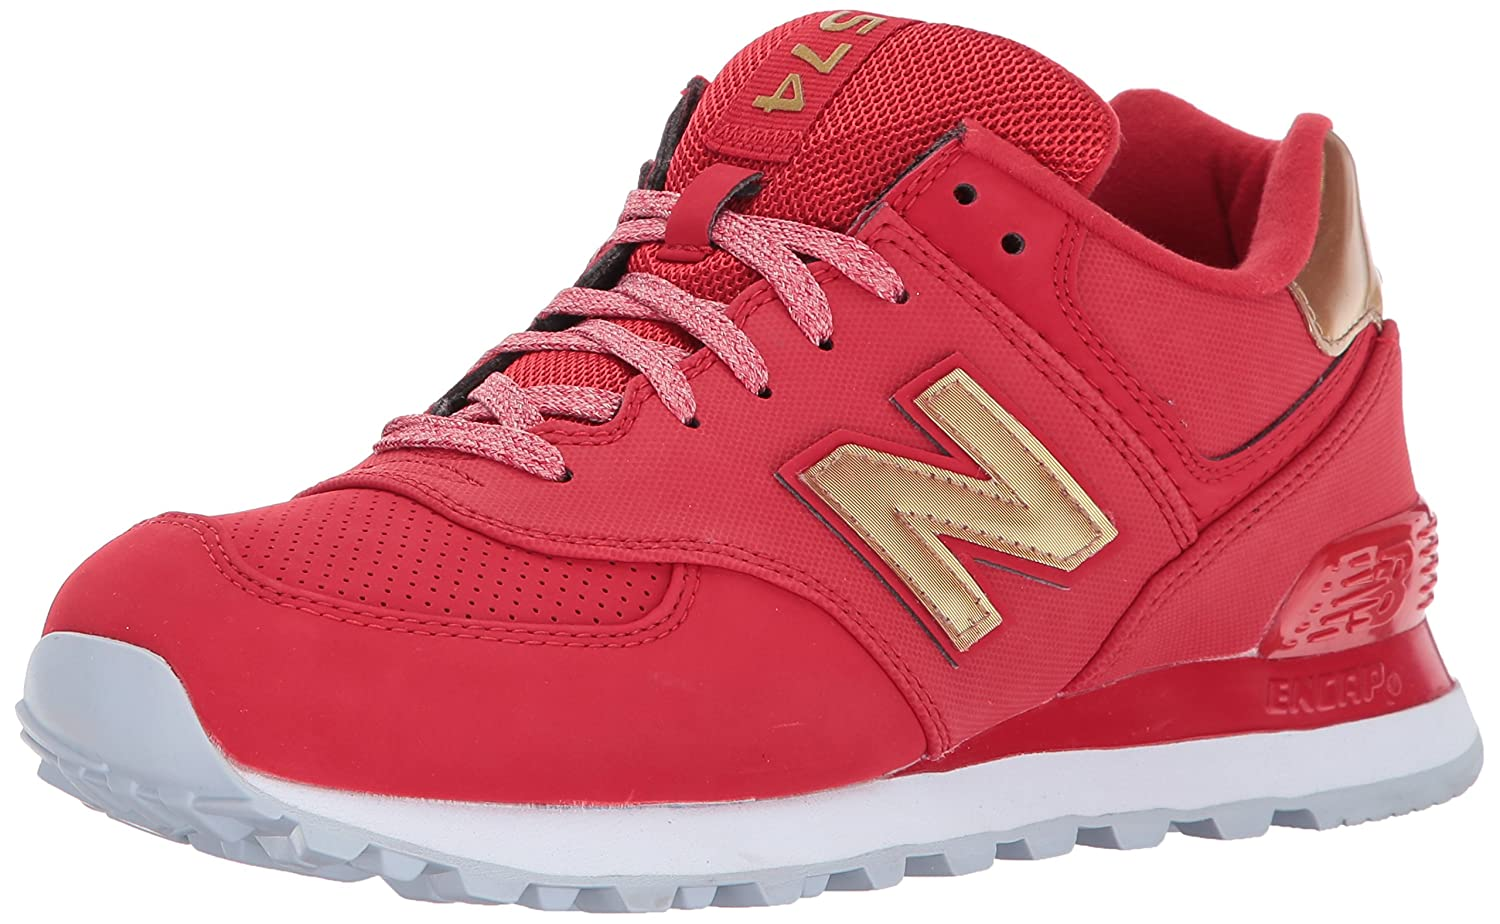 New Balance Women's 574v1 Varsity Sport Sneaker B01NA8UB66 9 D US|Team Red/Metallic Gold